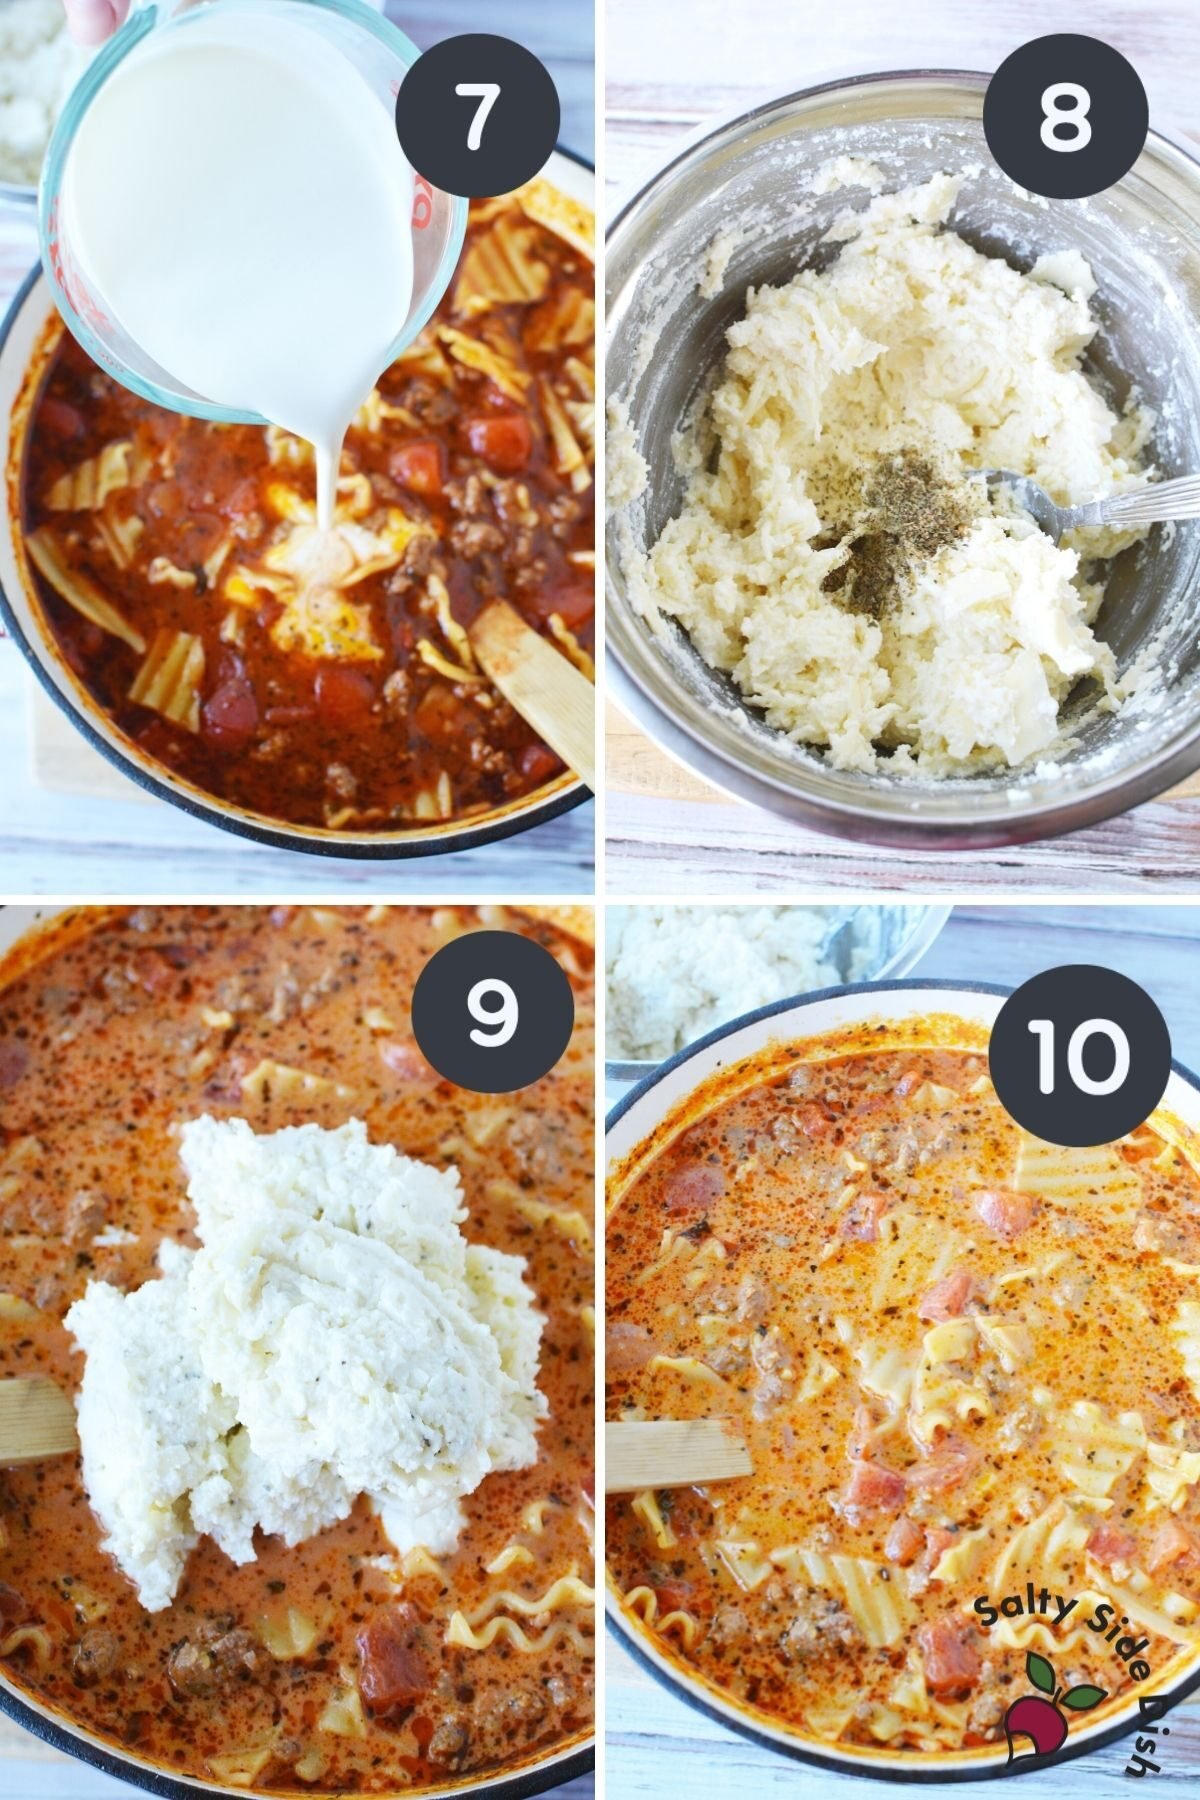 4 images showing heavy whipping cream and ricotta into stock pot.